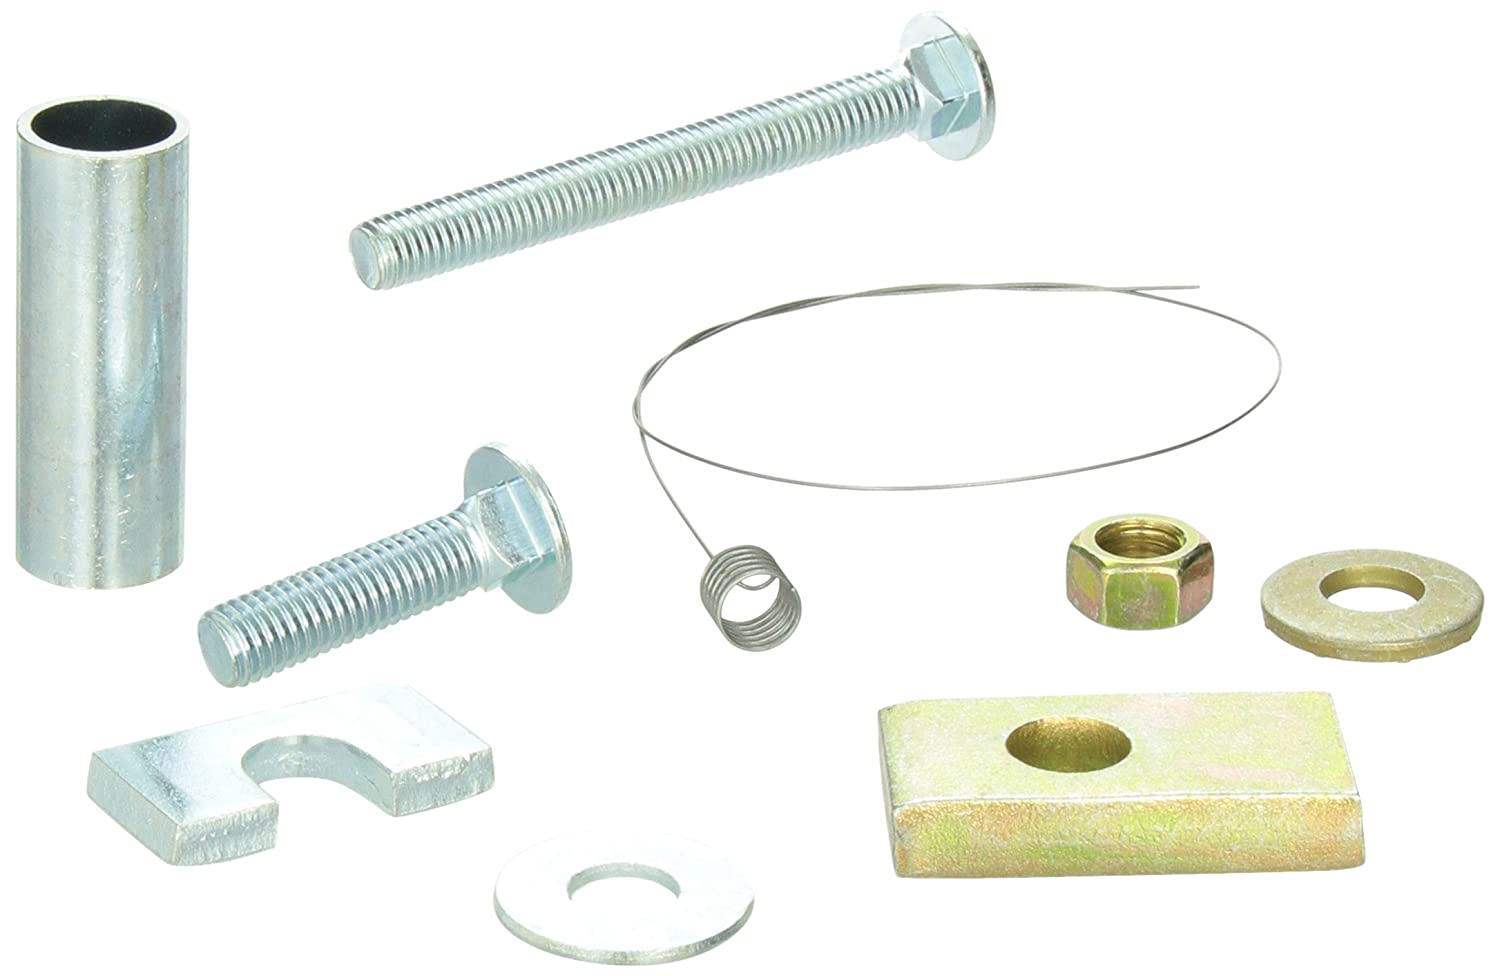 Reese T3 58164 Fifth Wheel Rail Kit Hardware